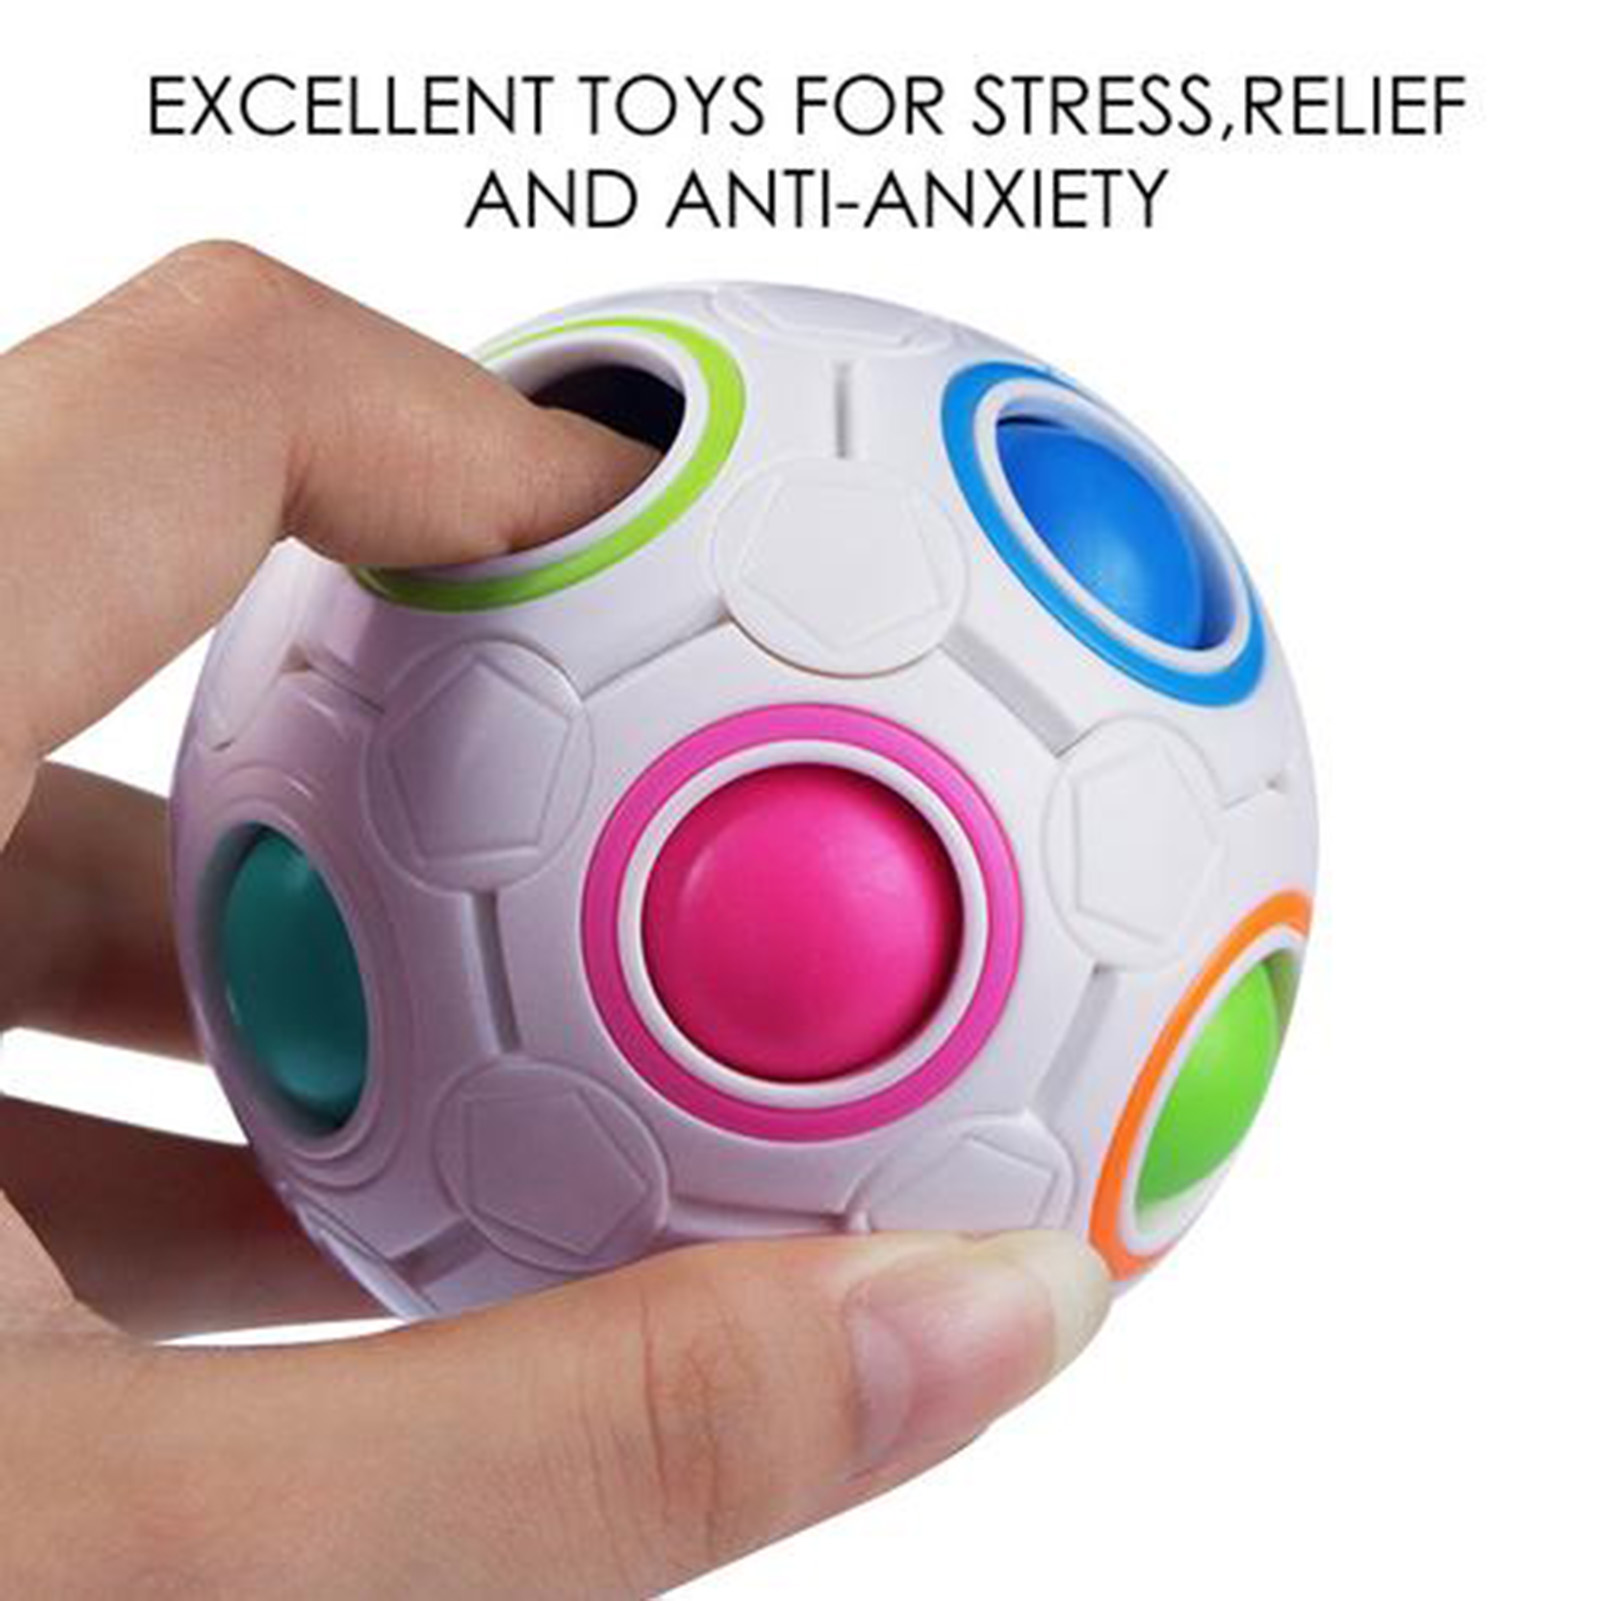 NEW Sensory Fidget Toys Pack Stress Relief Hand Toy for Kids Adults Calming queeze Bean img5